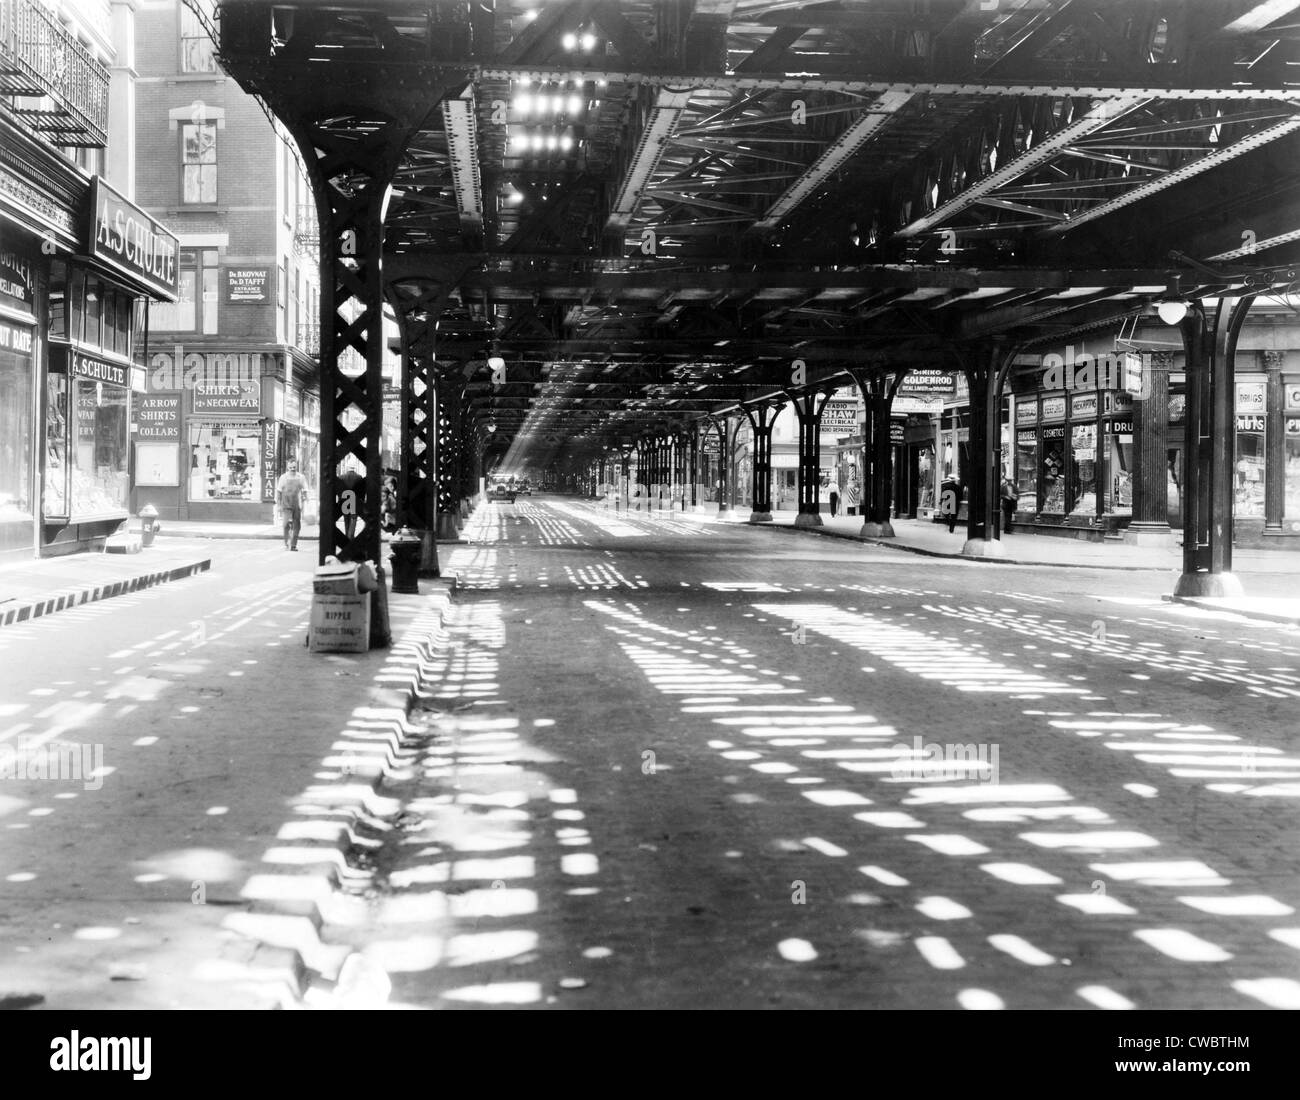 New York City's west side elevated railroad at Greenwich Street, New York in the 1930s. - Stock Image